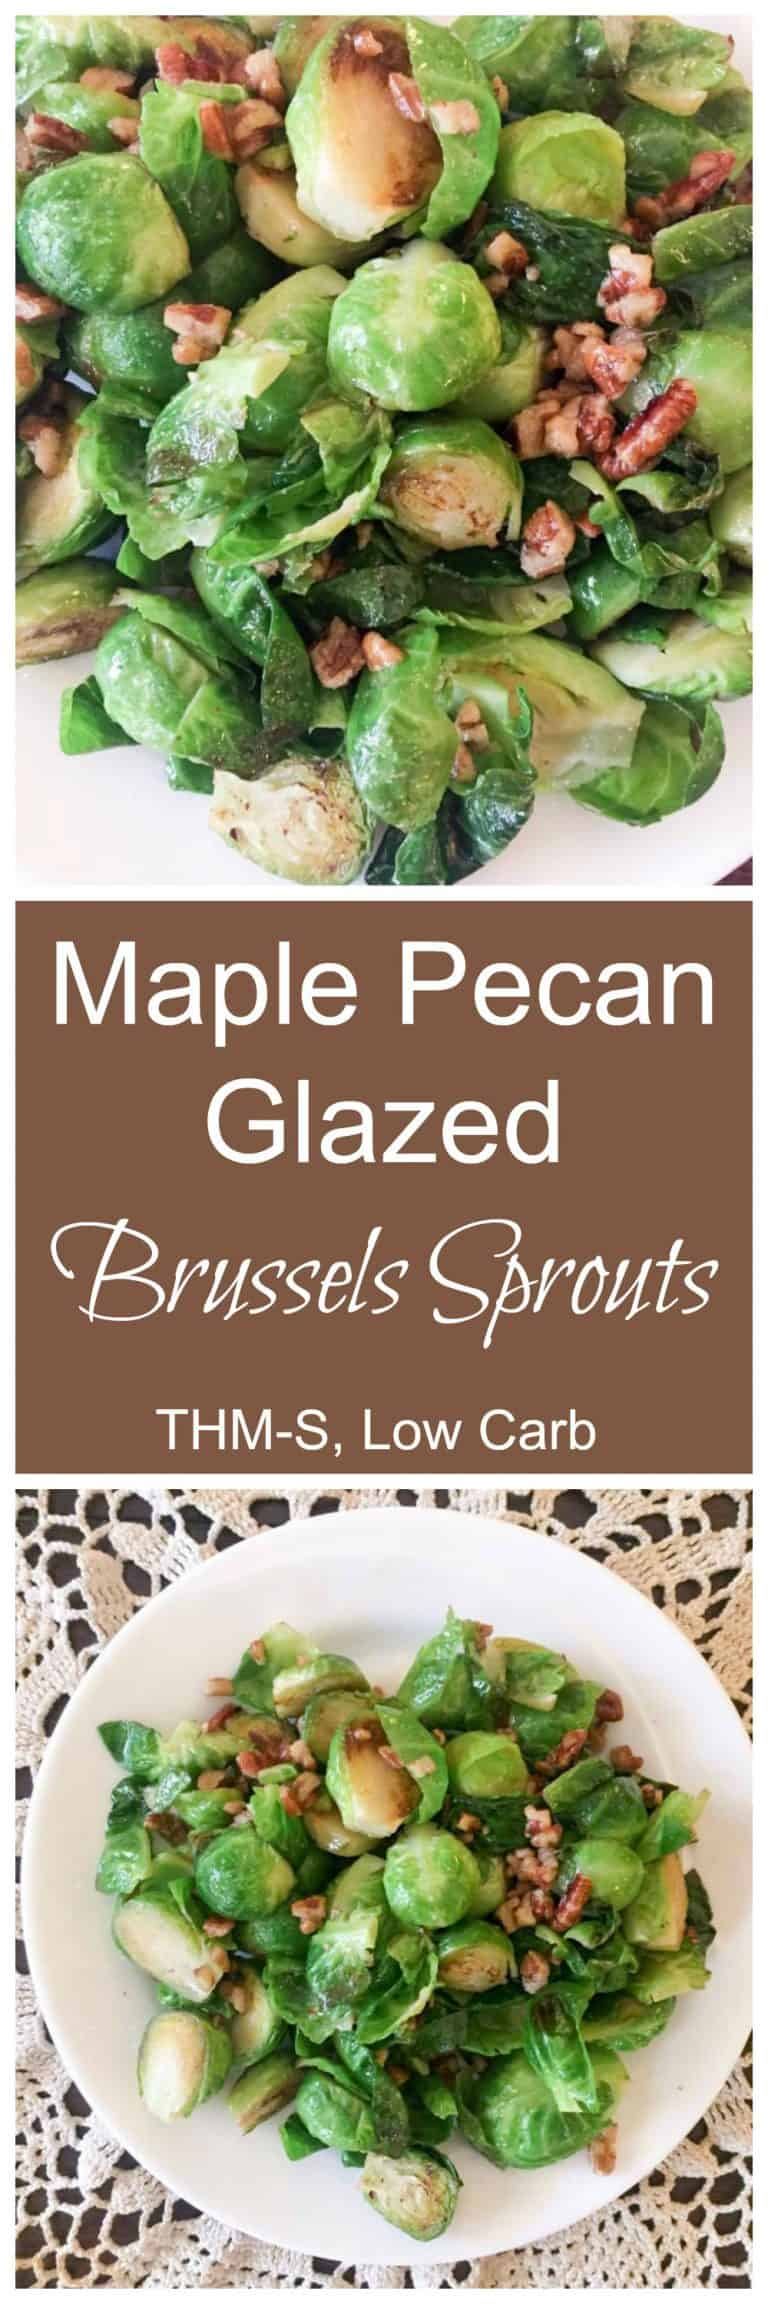 Maple Pecan Glazed Brussels Sprouts (THM-S, Low Carb)